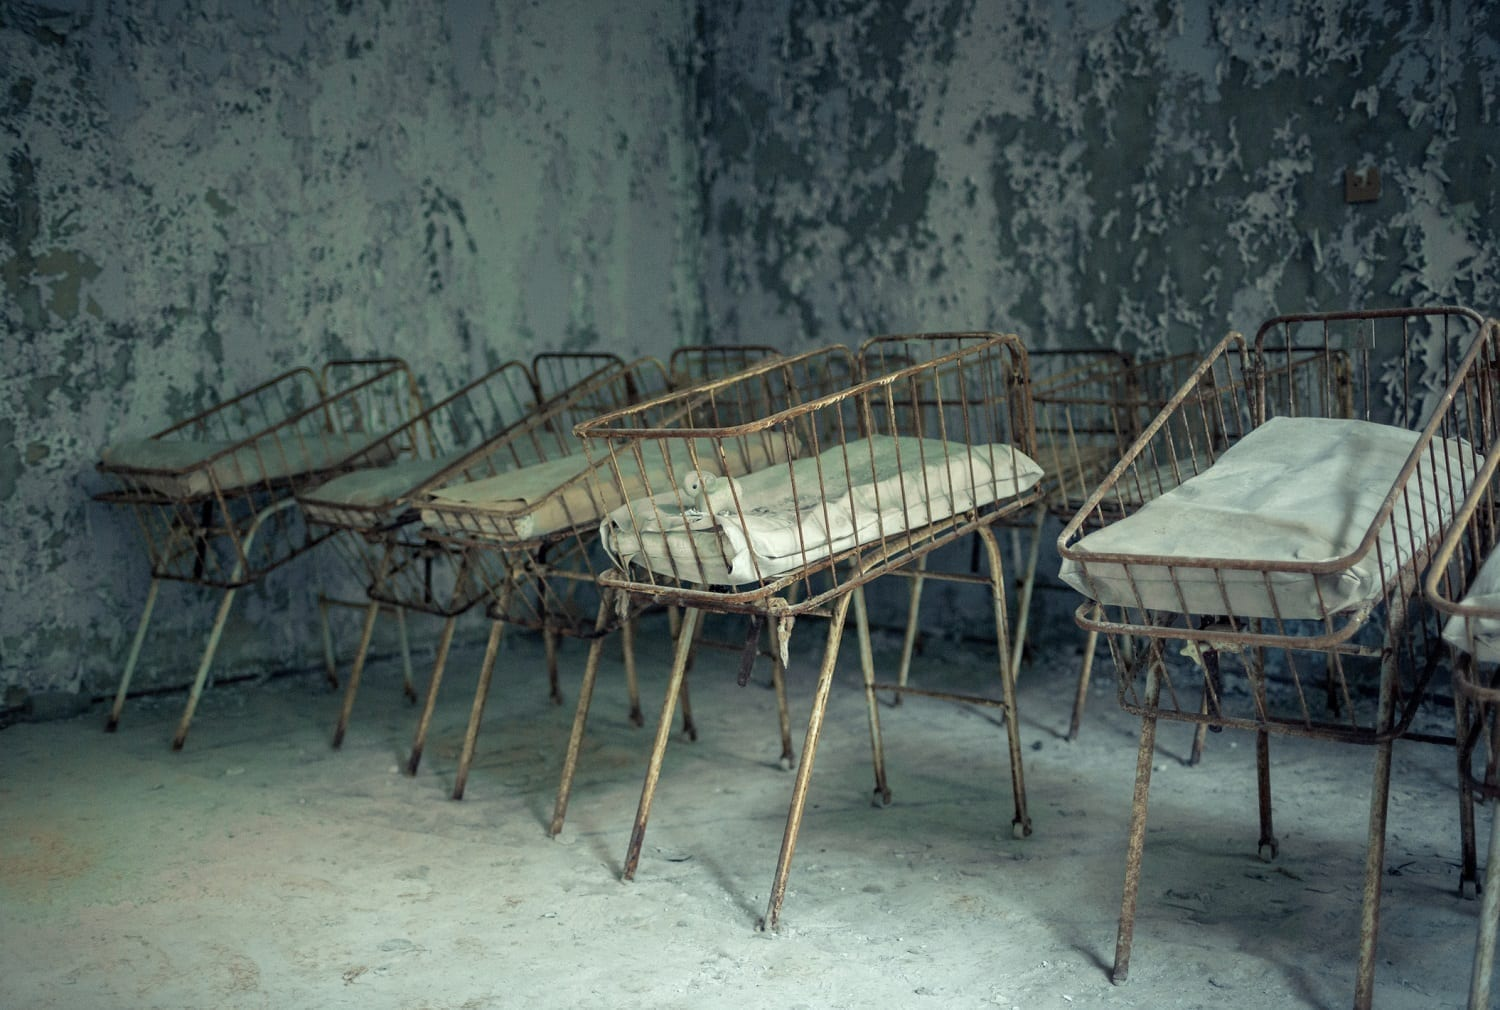 Abandoned Infants' Ward with rusty Bassinets: ID 110406990 © Daria Kochetova | Dreamstime.com